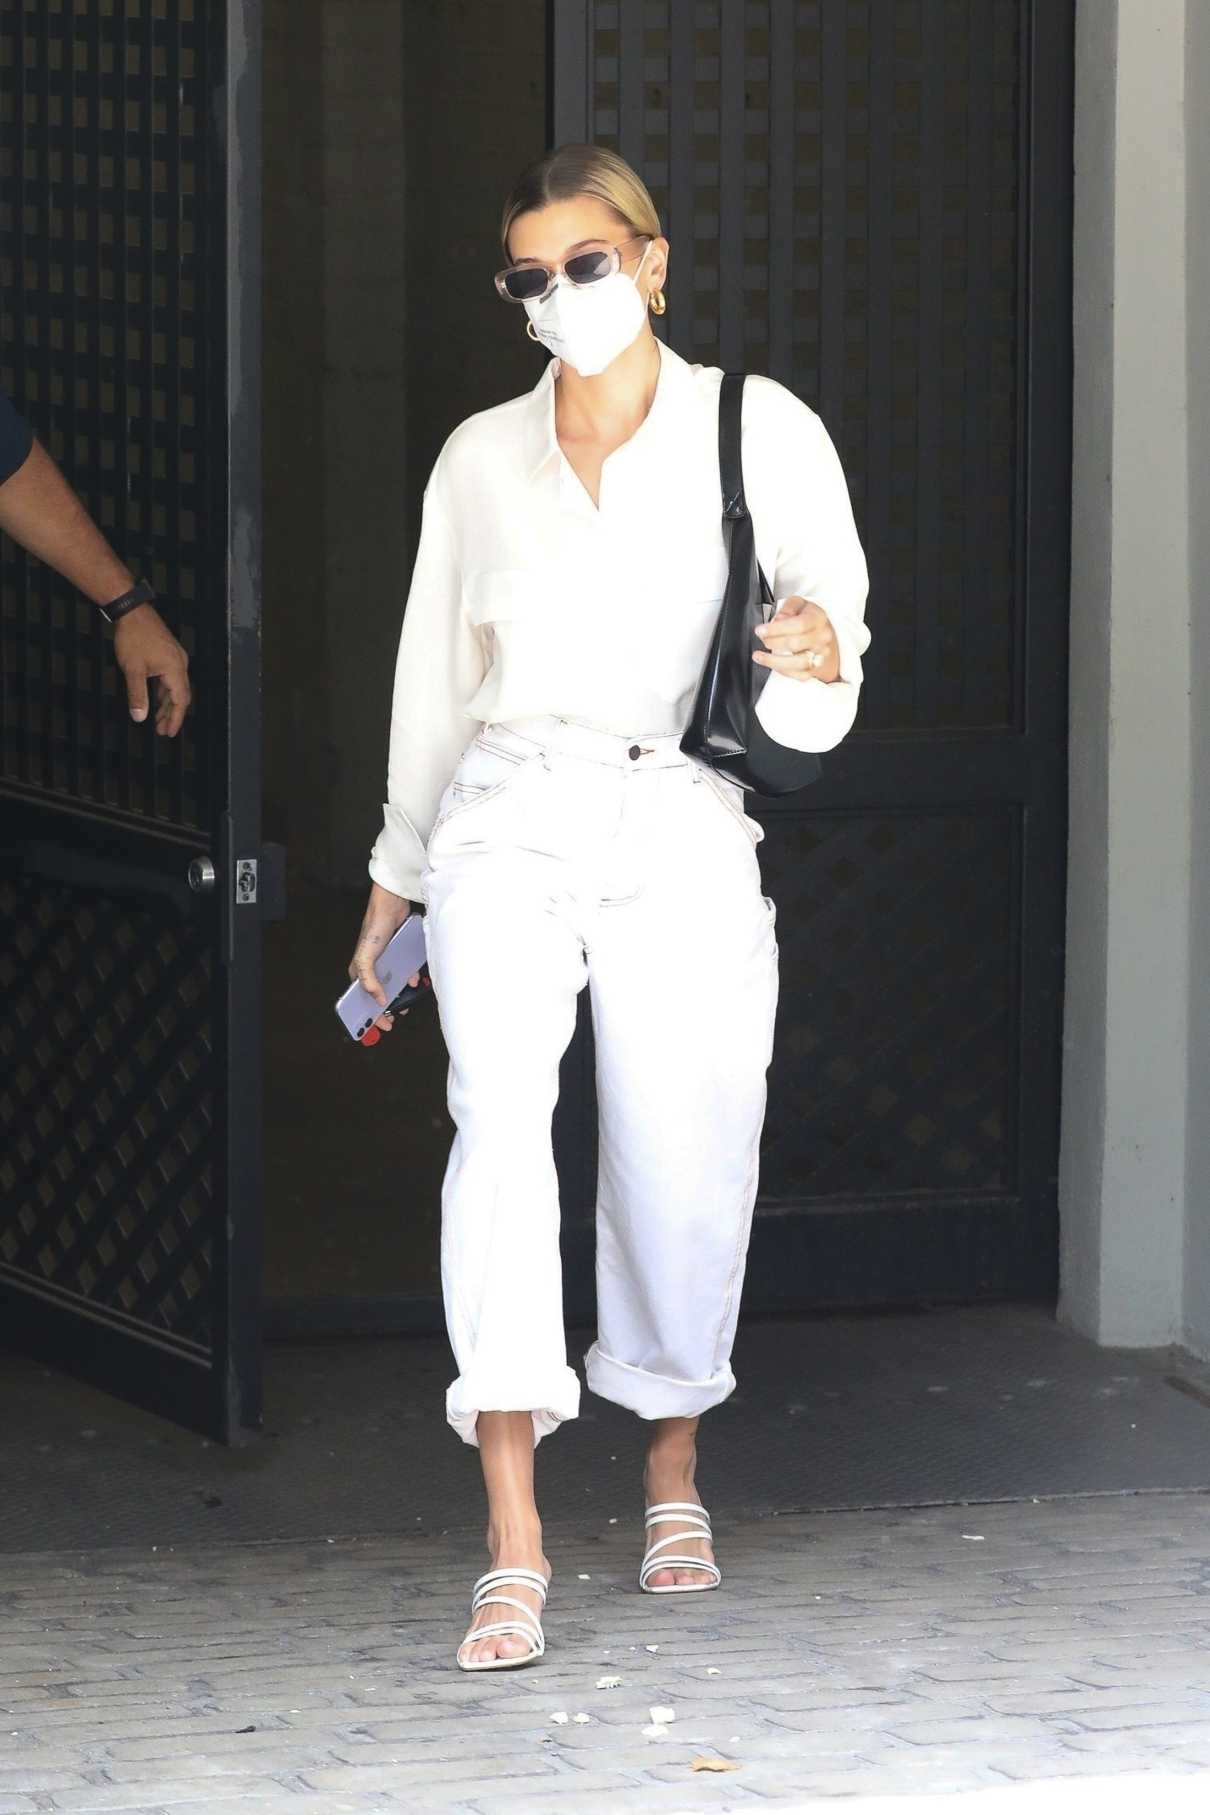 Hailey Bieber in a Protective Mask